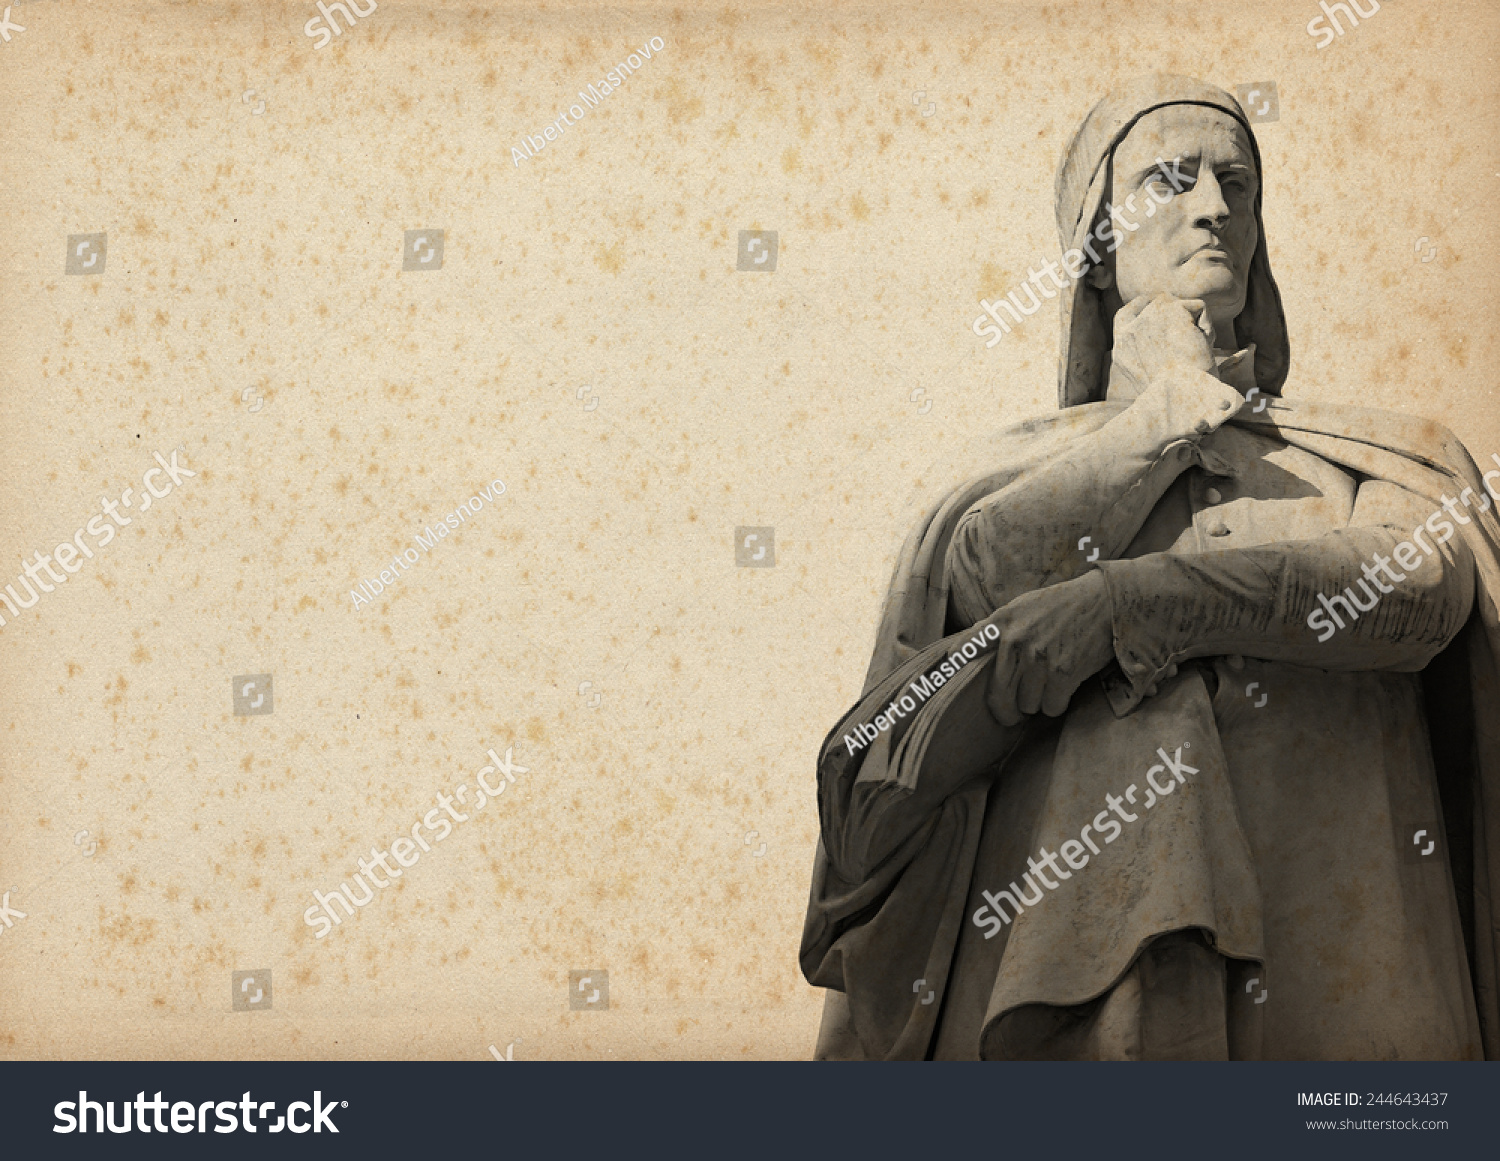 """essays dante alighieri Dante alighieri's influence on italian culture essay examples 886 words 